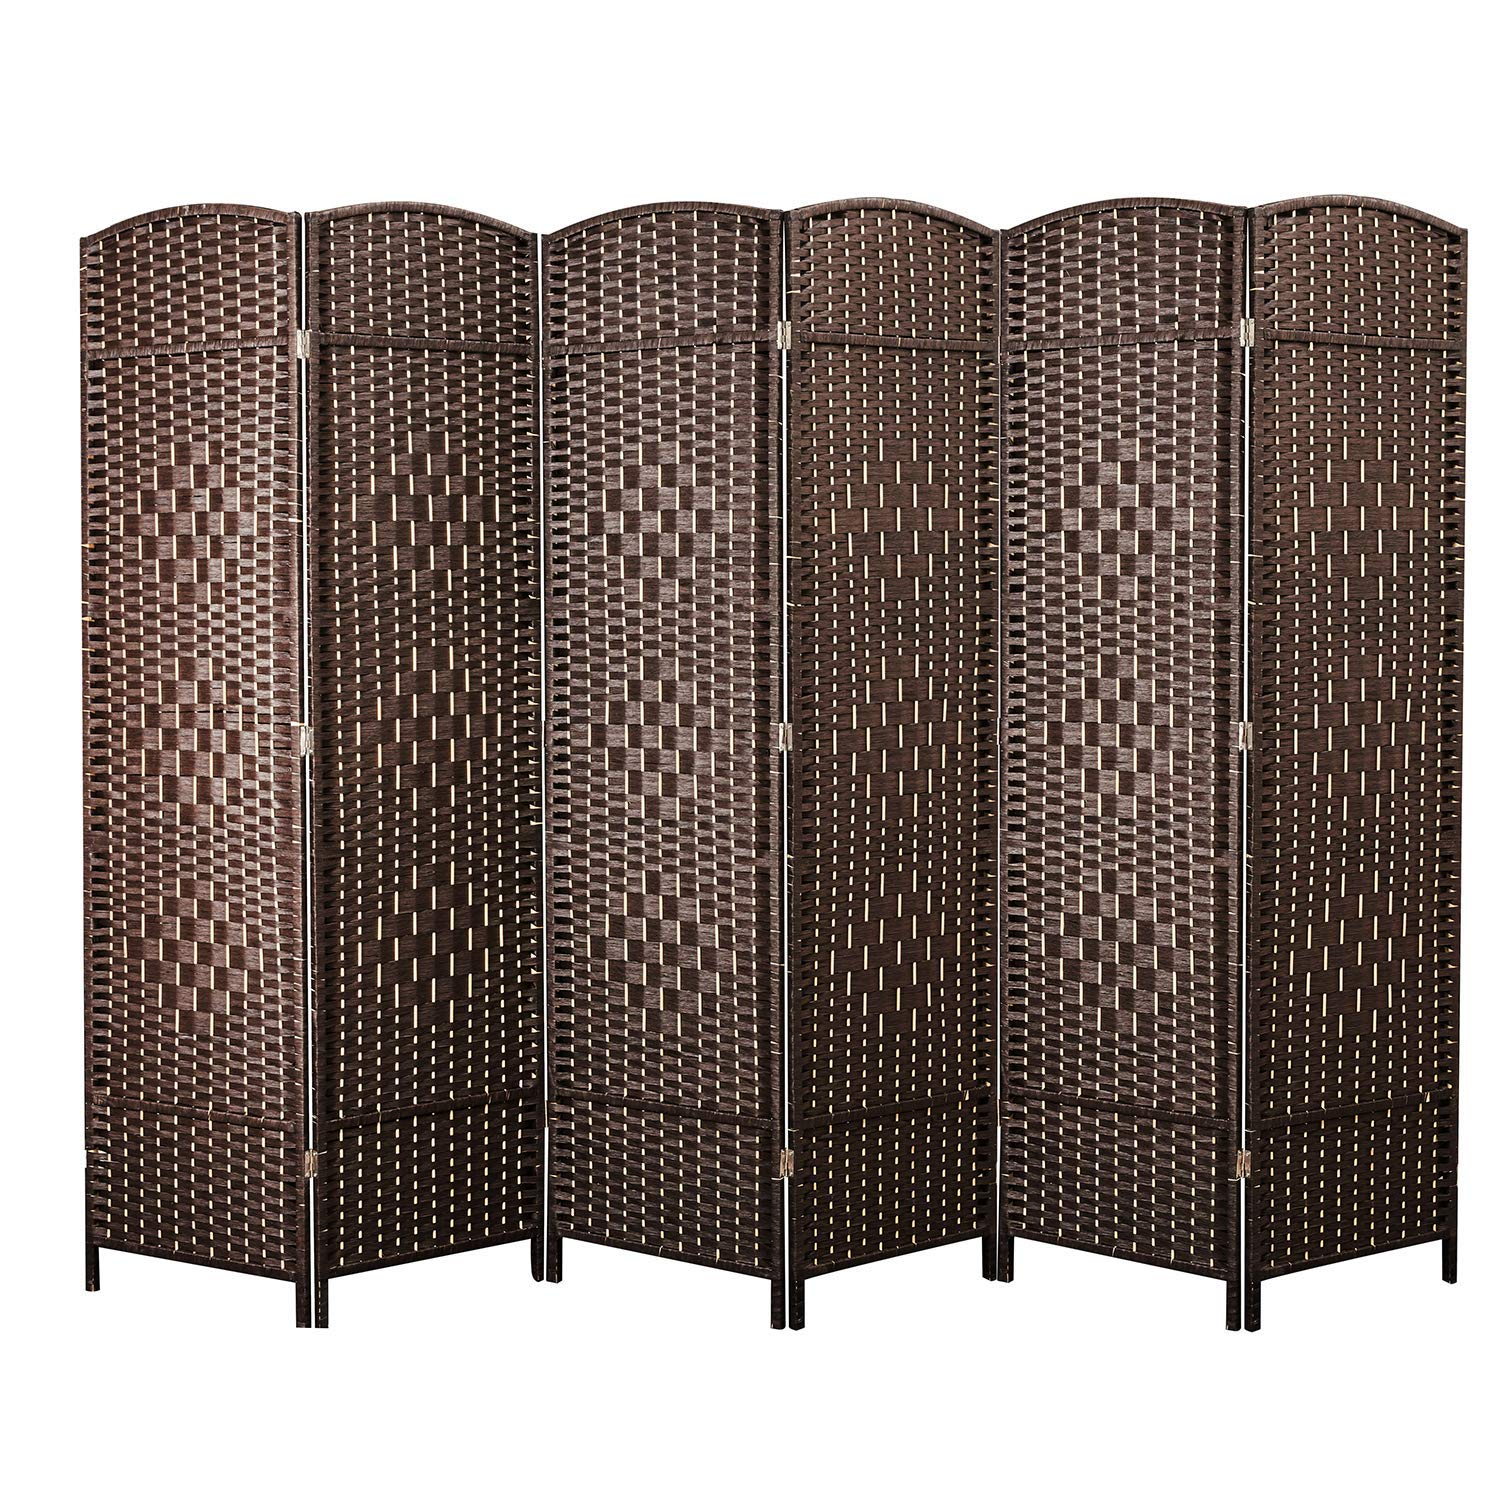 cocosica Weave Fiber Room Divider, Natural Fiber Folding Privacy Screen with Stainless Steel Hinge & 6 Panel Room Screen Divider Separator for Decorating Bedding, Dining, Study and Sitting Room by cocosica